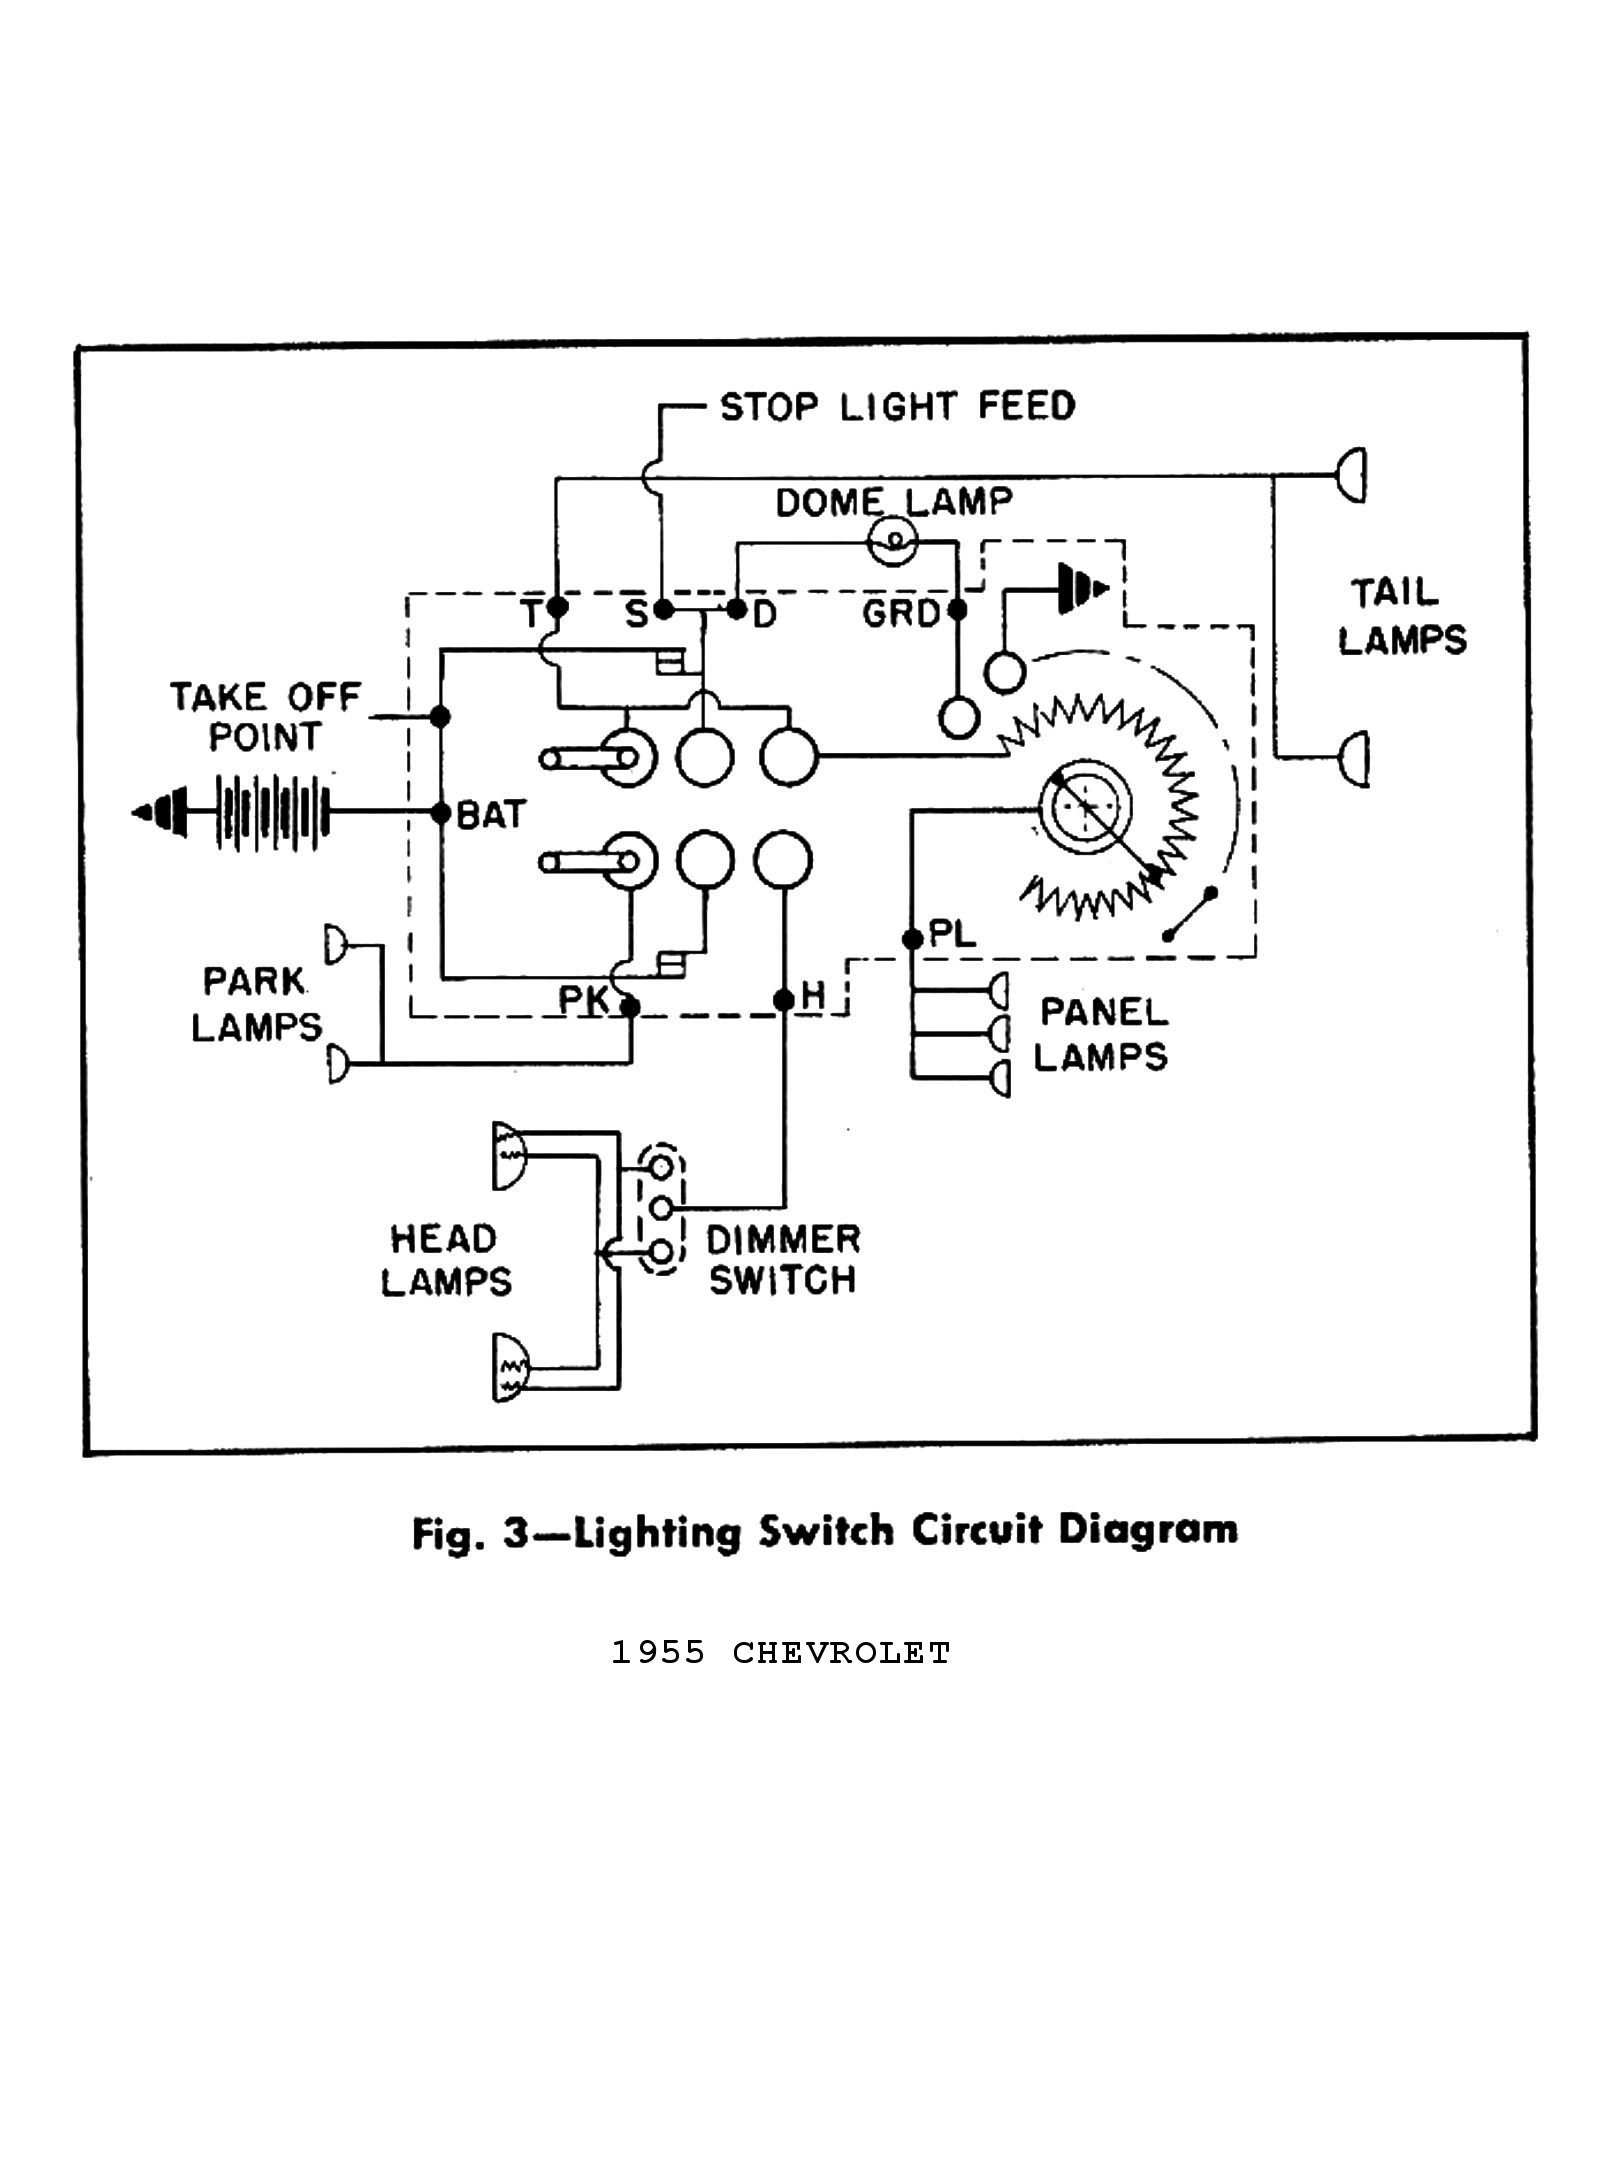 78 Scottsdale Headlight Wiring Diagram Library. Wiring Diagram For 1957 Chevy Truck Just Data 1975 Alternator 1978. Chevrolet. 1978 Chevy Scottsdale Wiring Diagram At Scoala.co